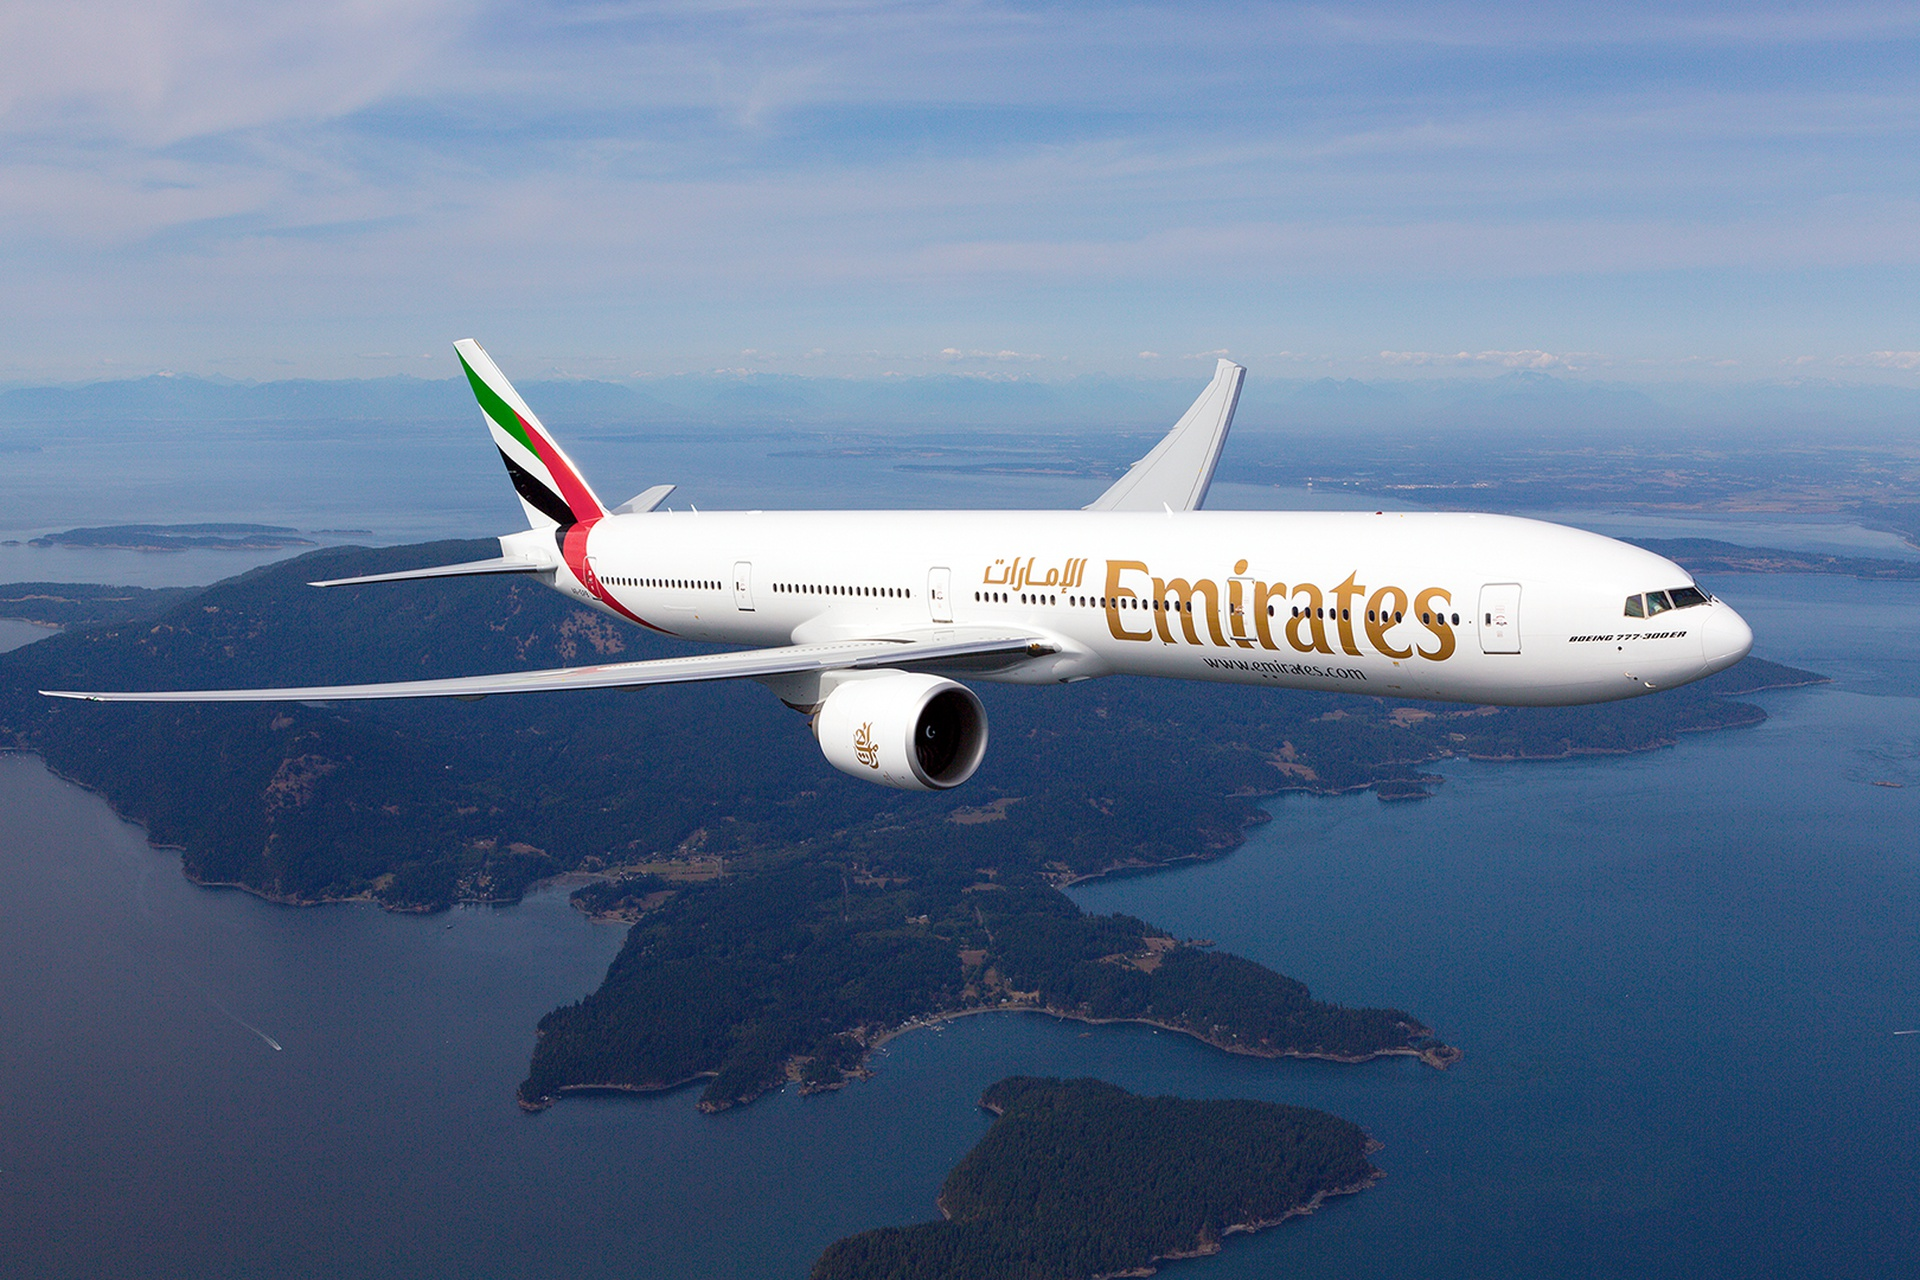 The-Emirates-Boeing-777-300ER-2-239305.jpg